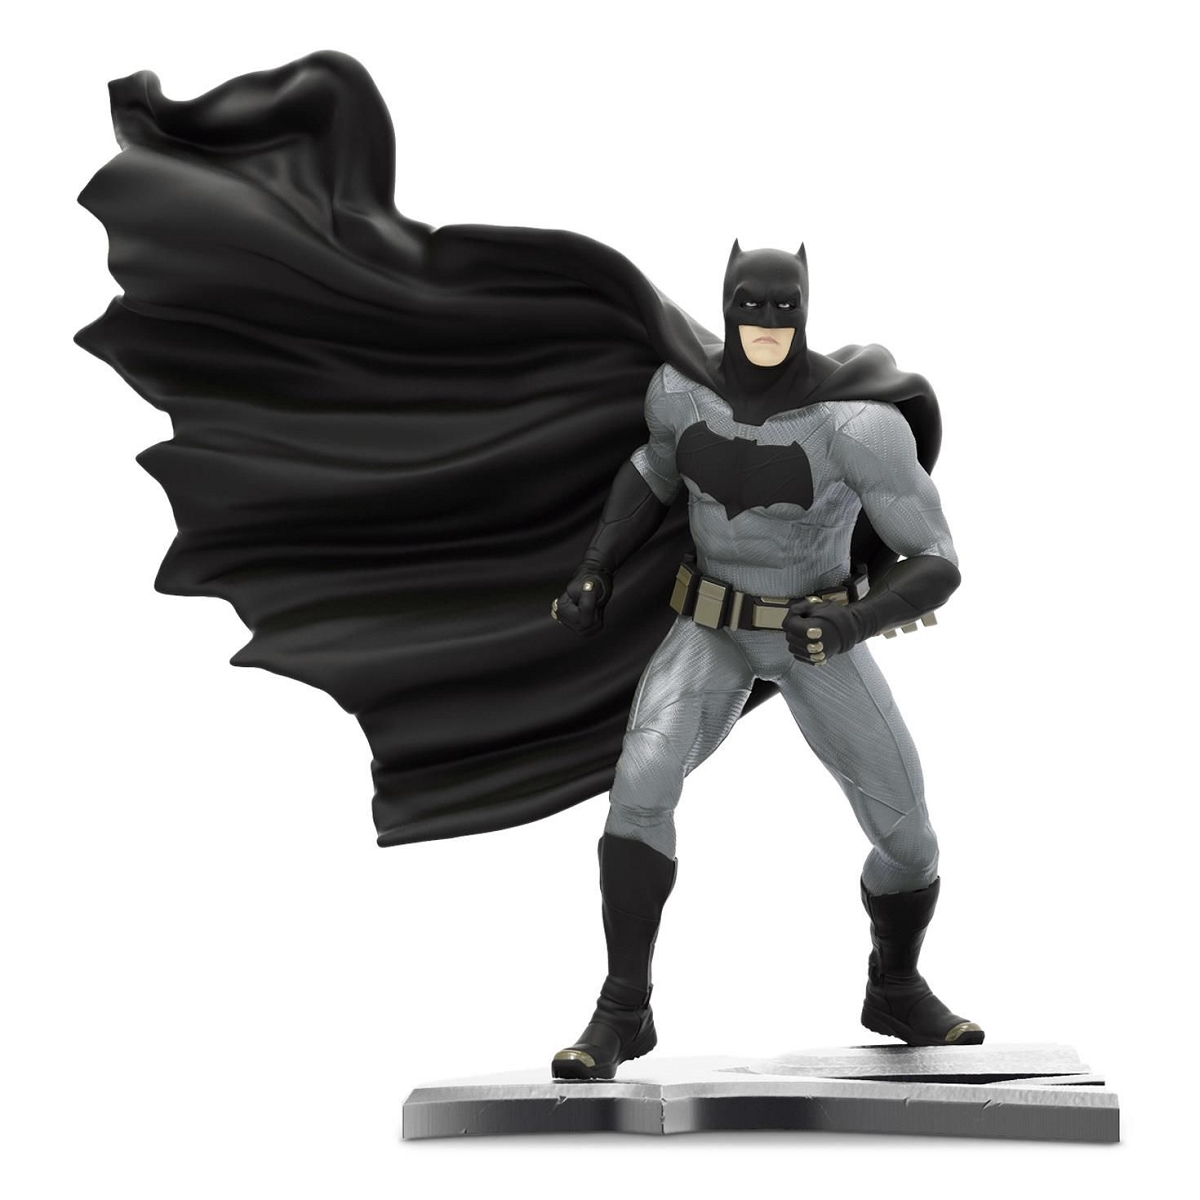 2016 Batman Hallmark Keepsake Ornament